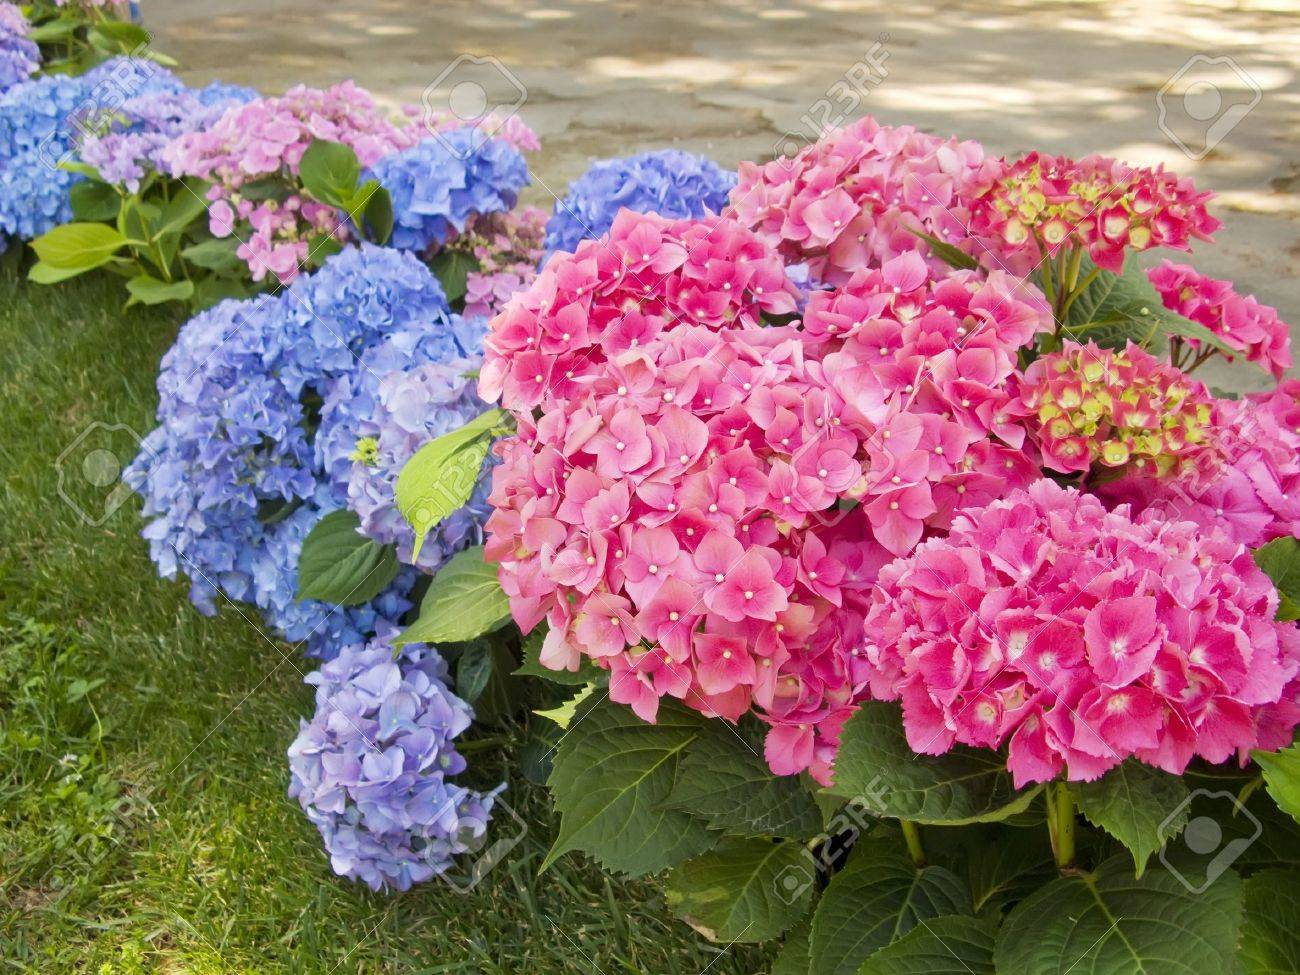 Hydrangea pink and blue flowers at the garden stock photo picture hydrangea pink and blue flowers at the garden stock photo 10681972 mightylinksfo